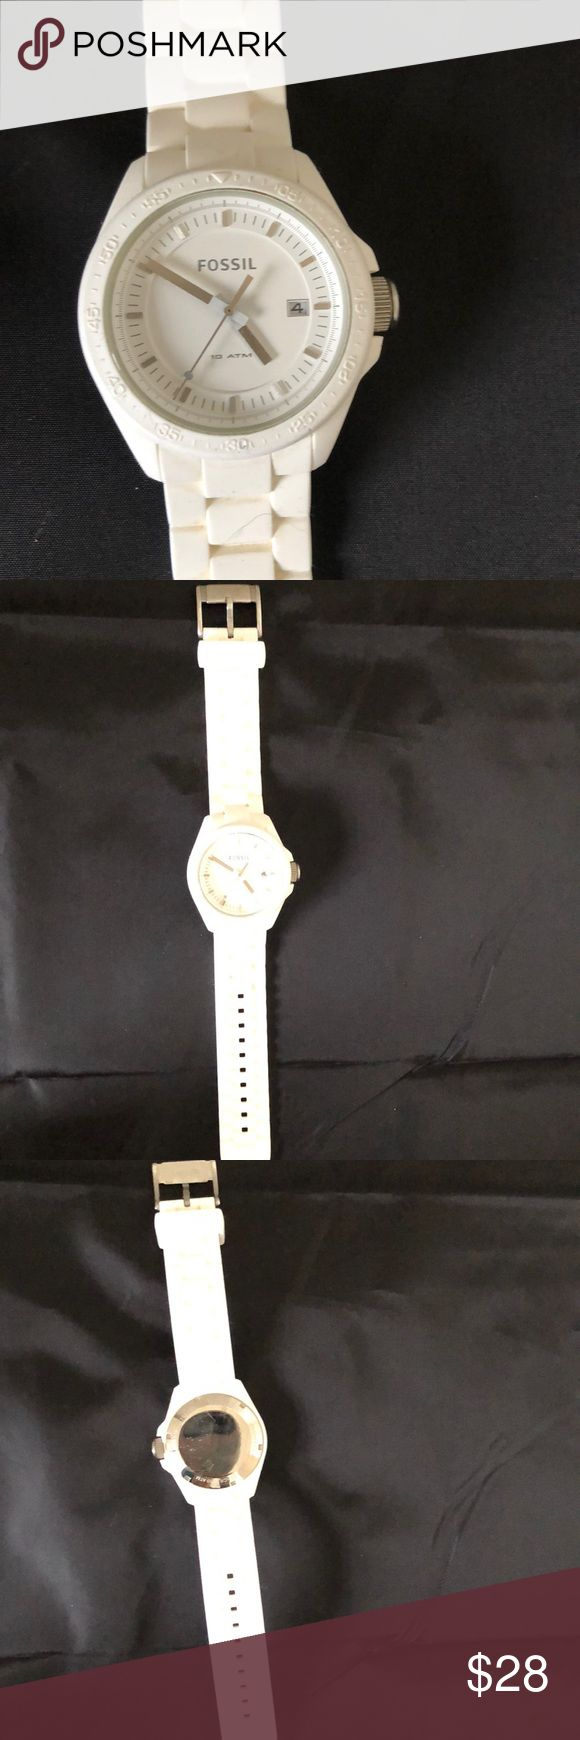 Fossil White Rubber Watch Like new Fossil white rubber watch. Fossil Jewelry